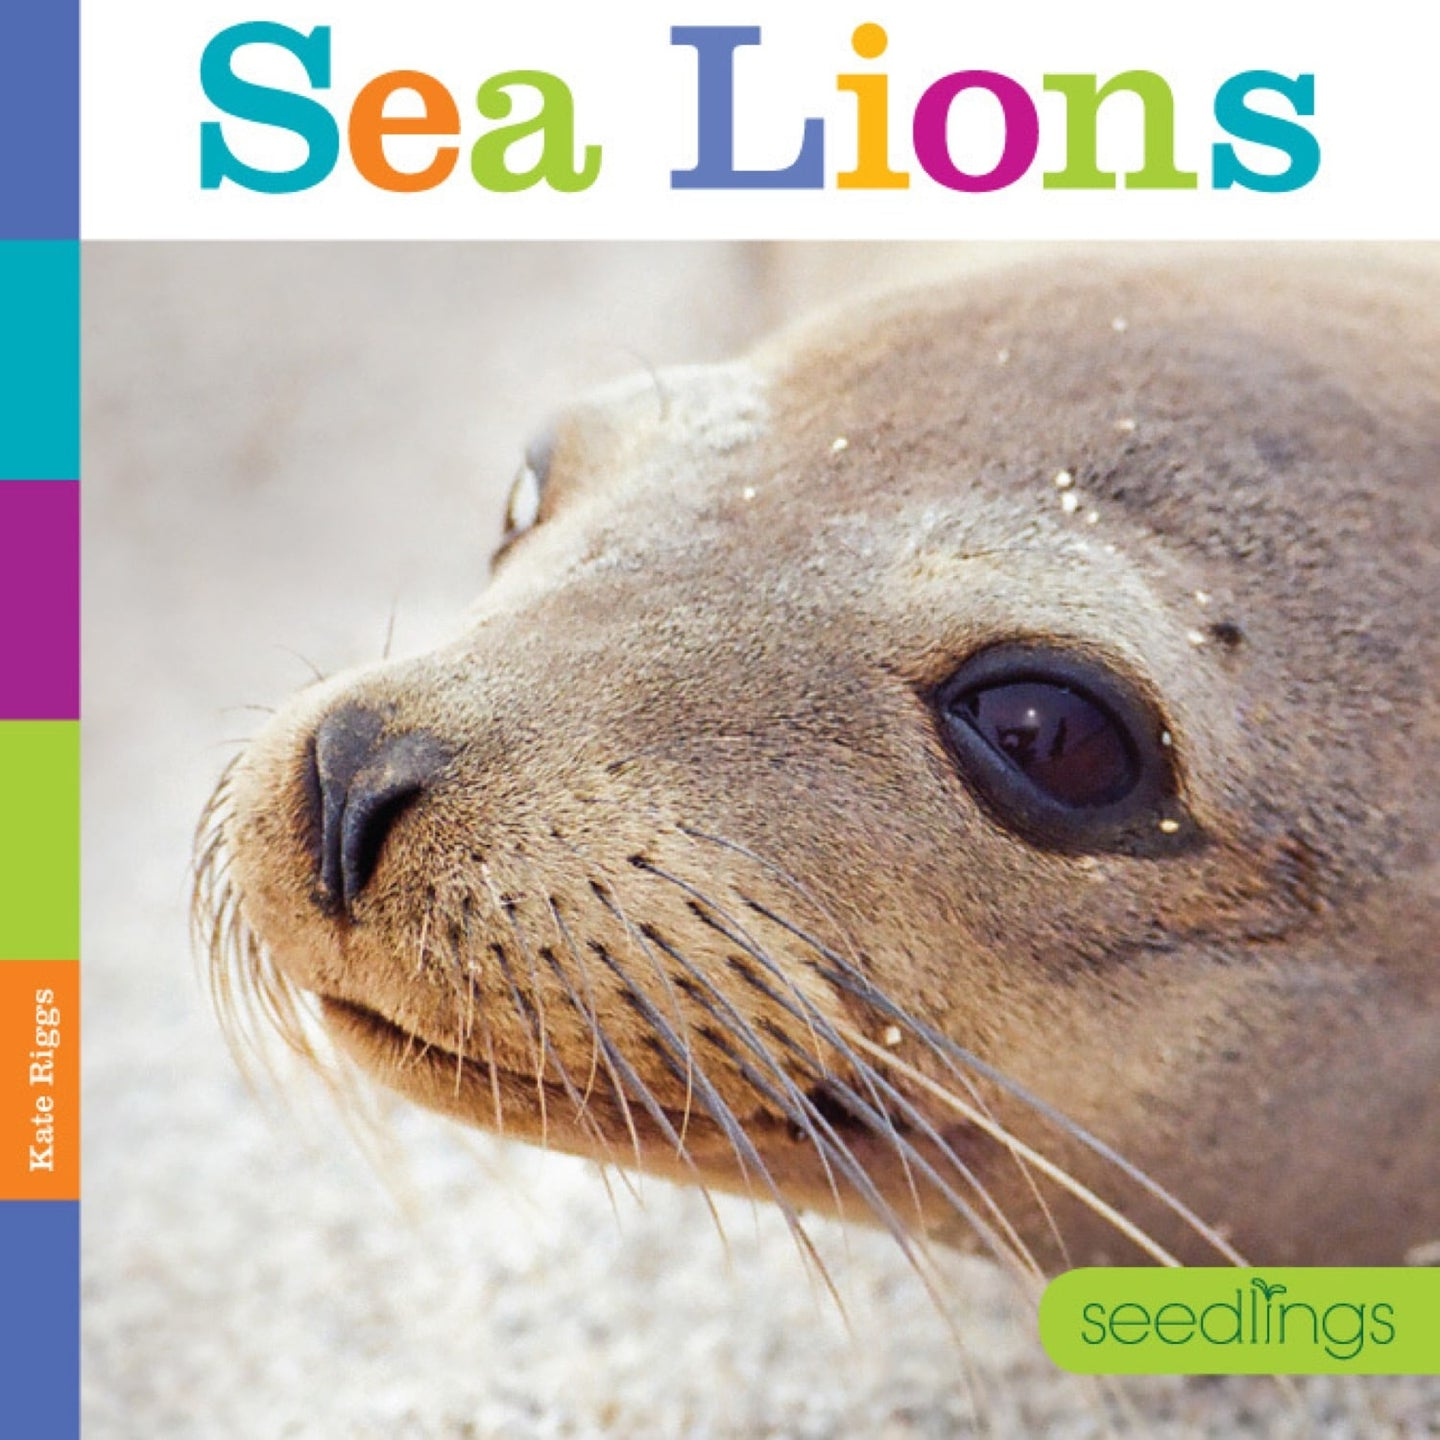 Seedlings: Sea Lions